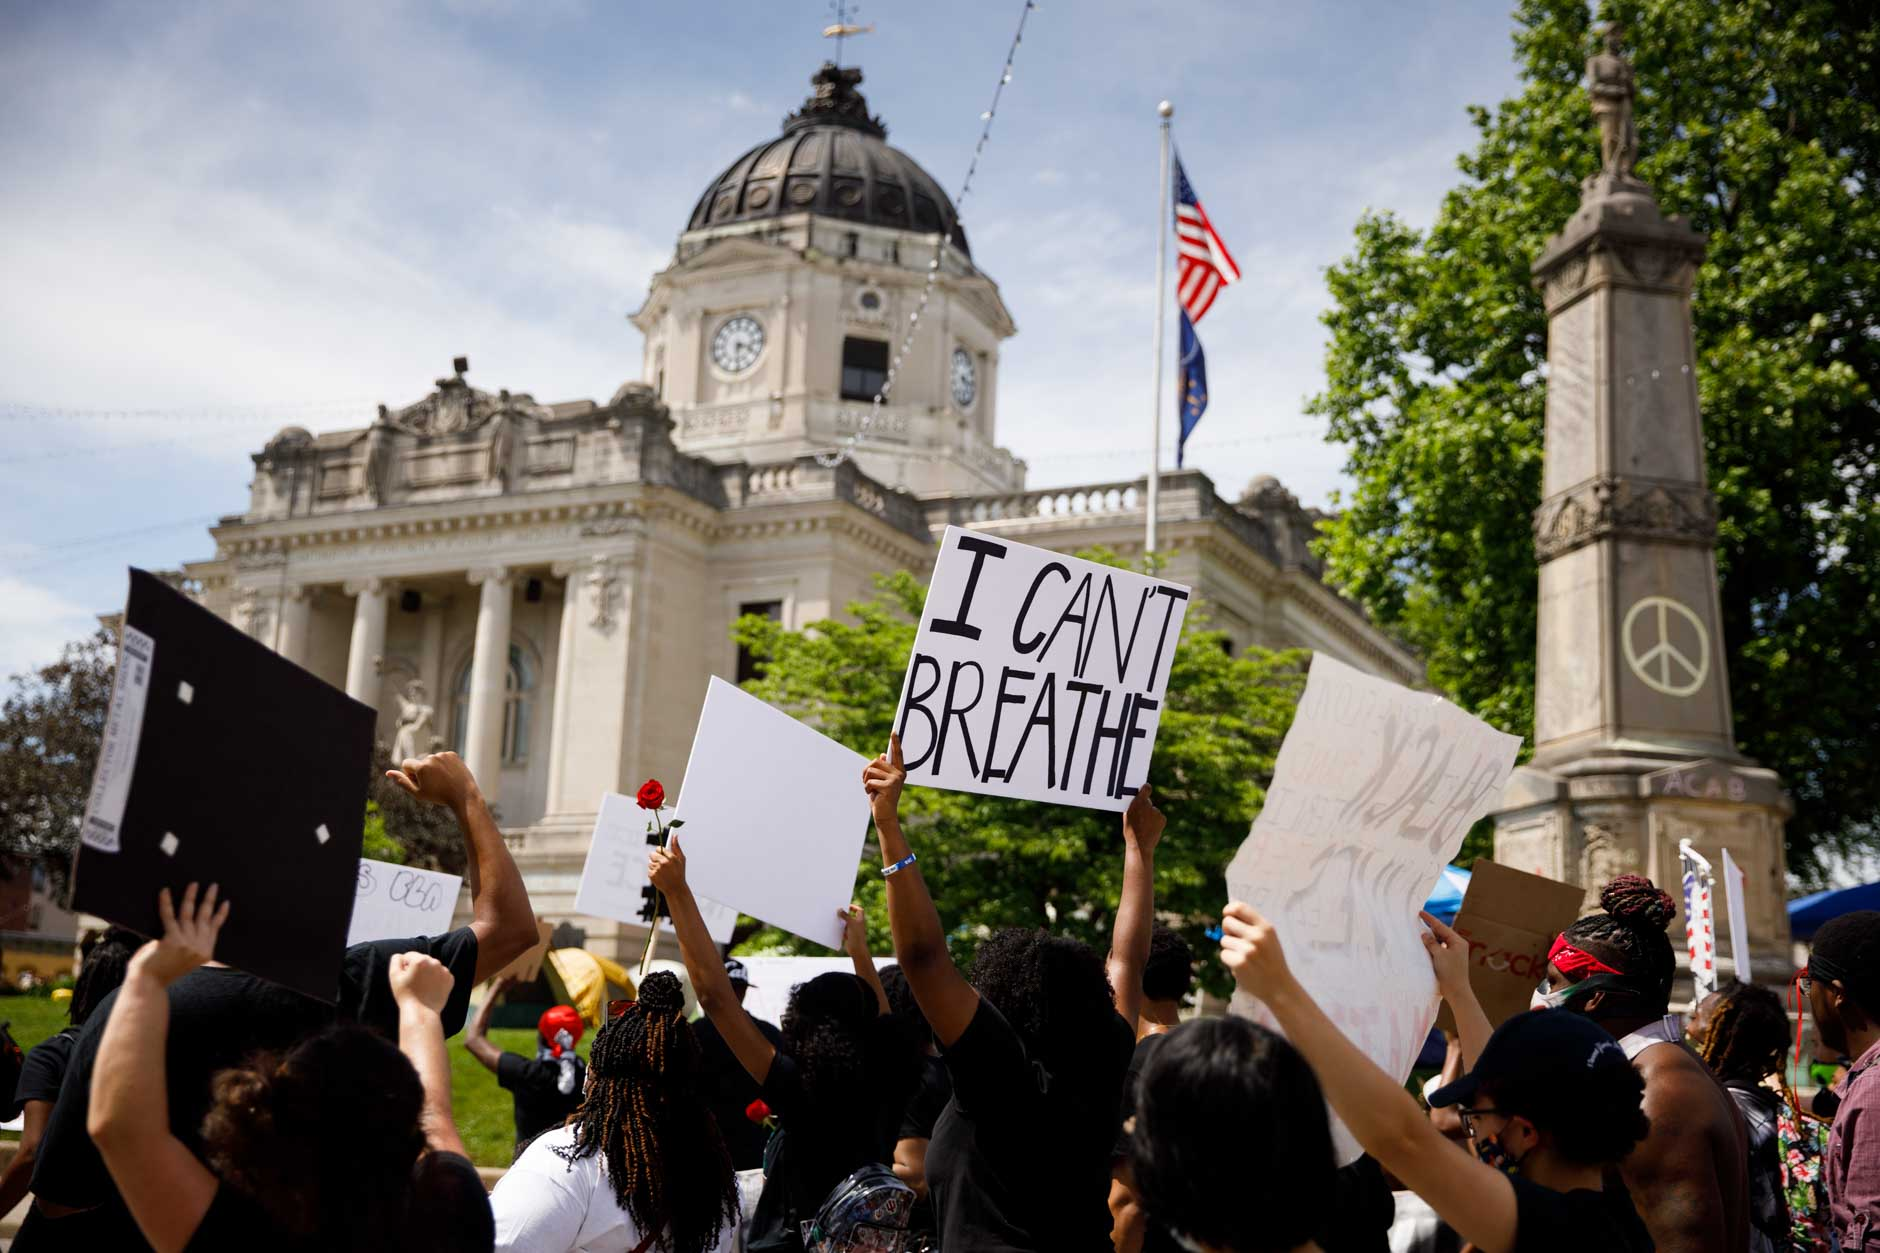 Hundreds march peacefully against police brutality around the Monroe County Courthouse square in Bloomington on Friday, June 5, 2020. (James Brosher/Indiana University)